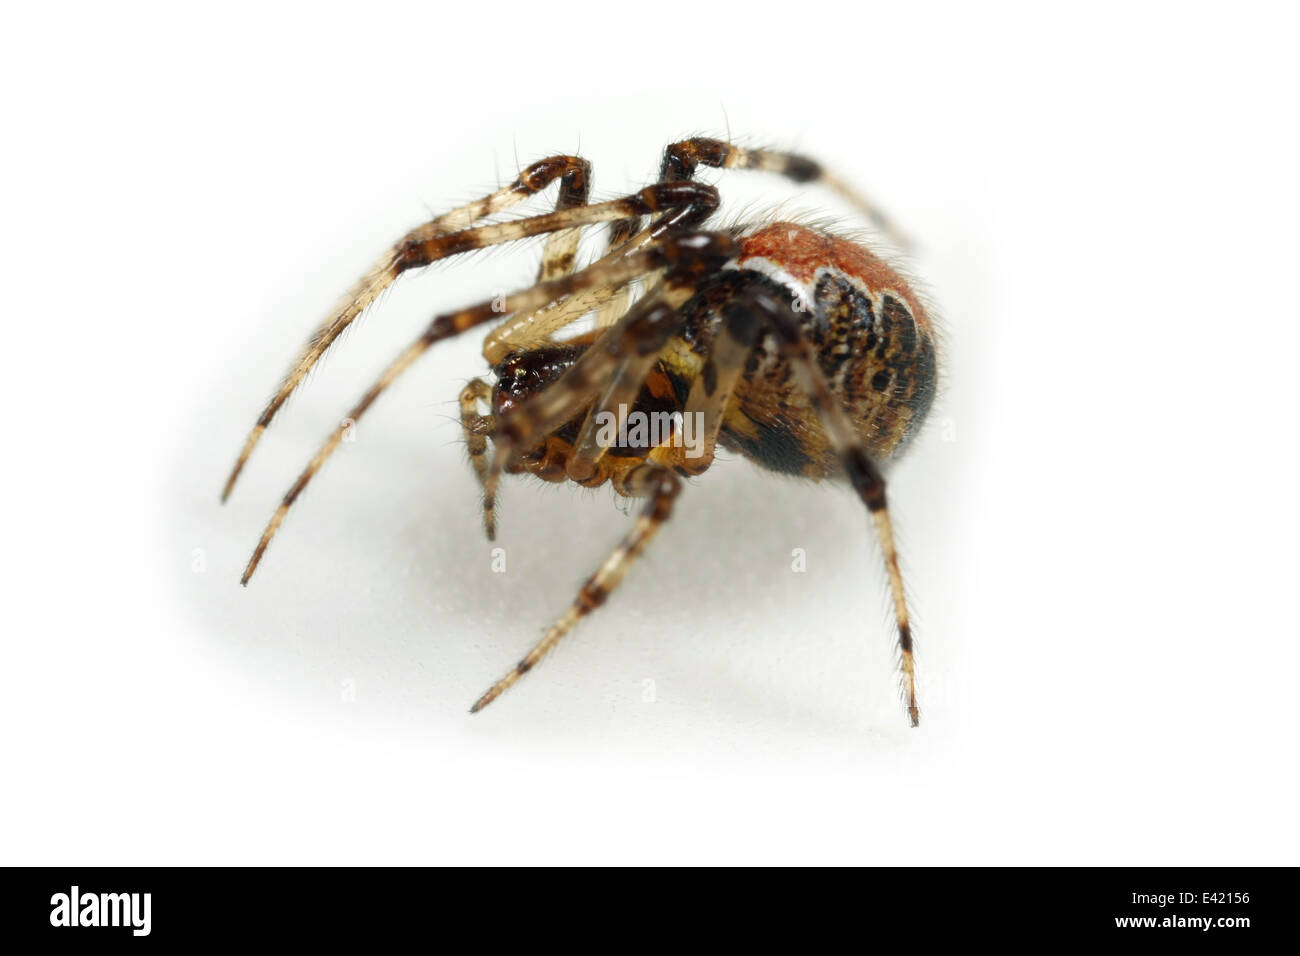 Female Theridion pictum spider, part of the family Theridiidae (Cobweb weavers). Isolated on white background. - Stock Image